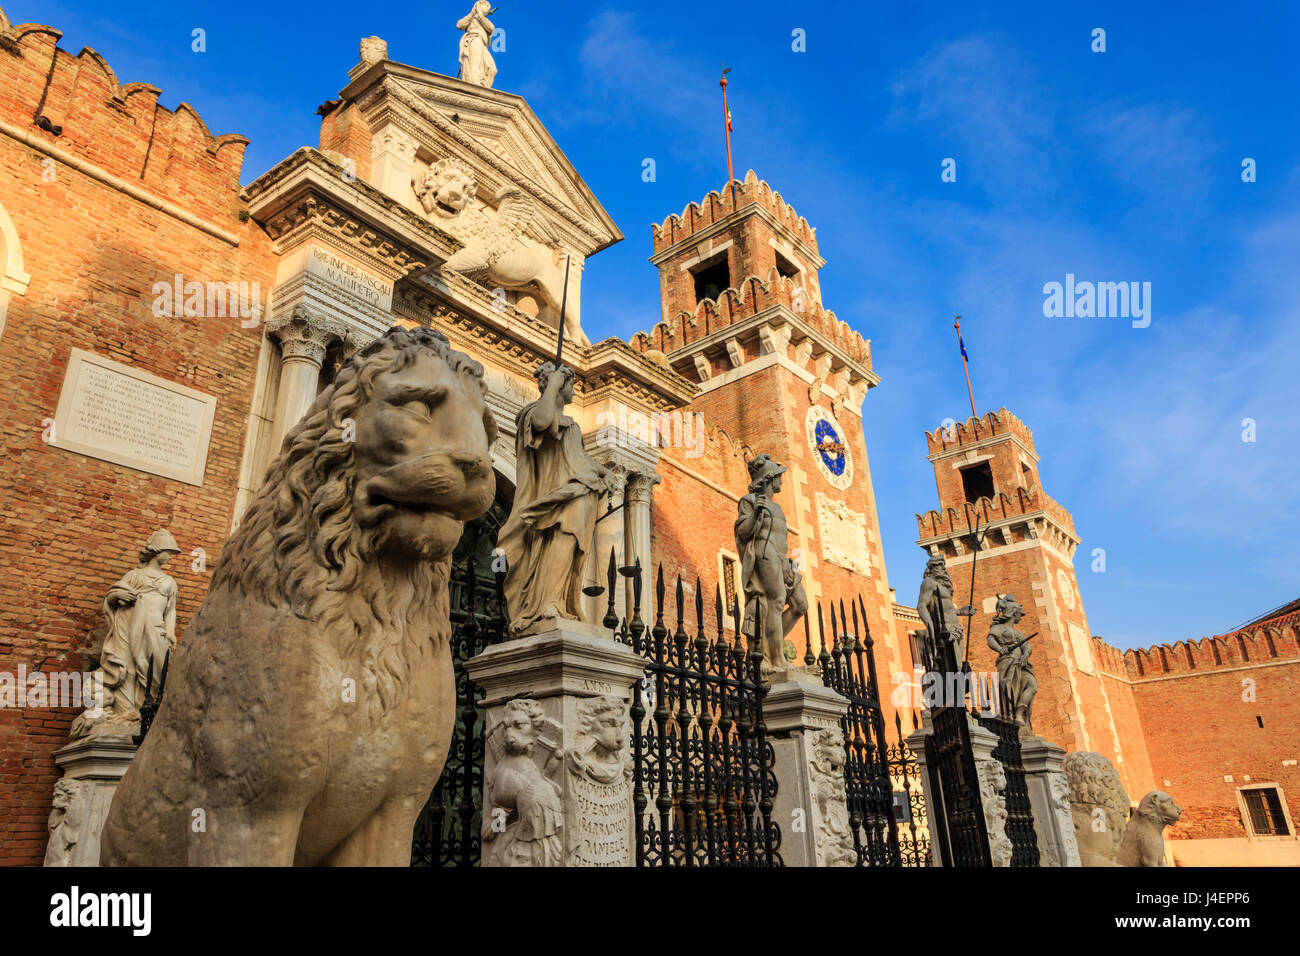 Carved lions and statues, Porta Magna, Arsenale, in winter afternoon sun, Castello, Venice, UNESCO, Veneto, Italy - Stock Image